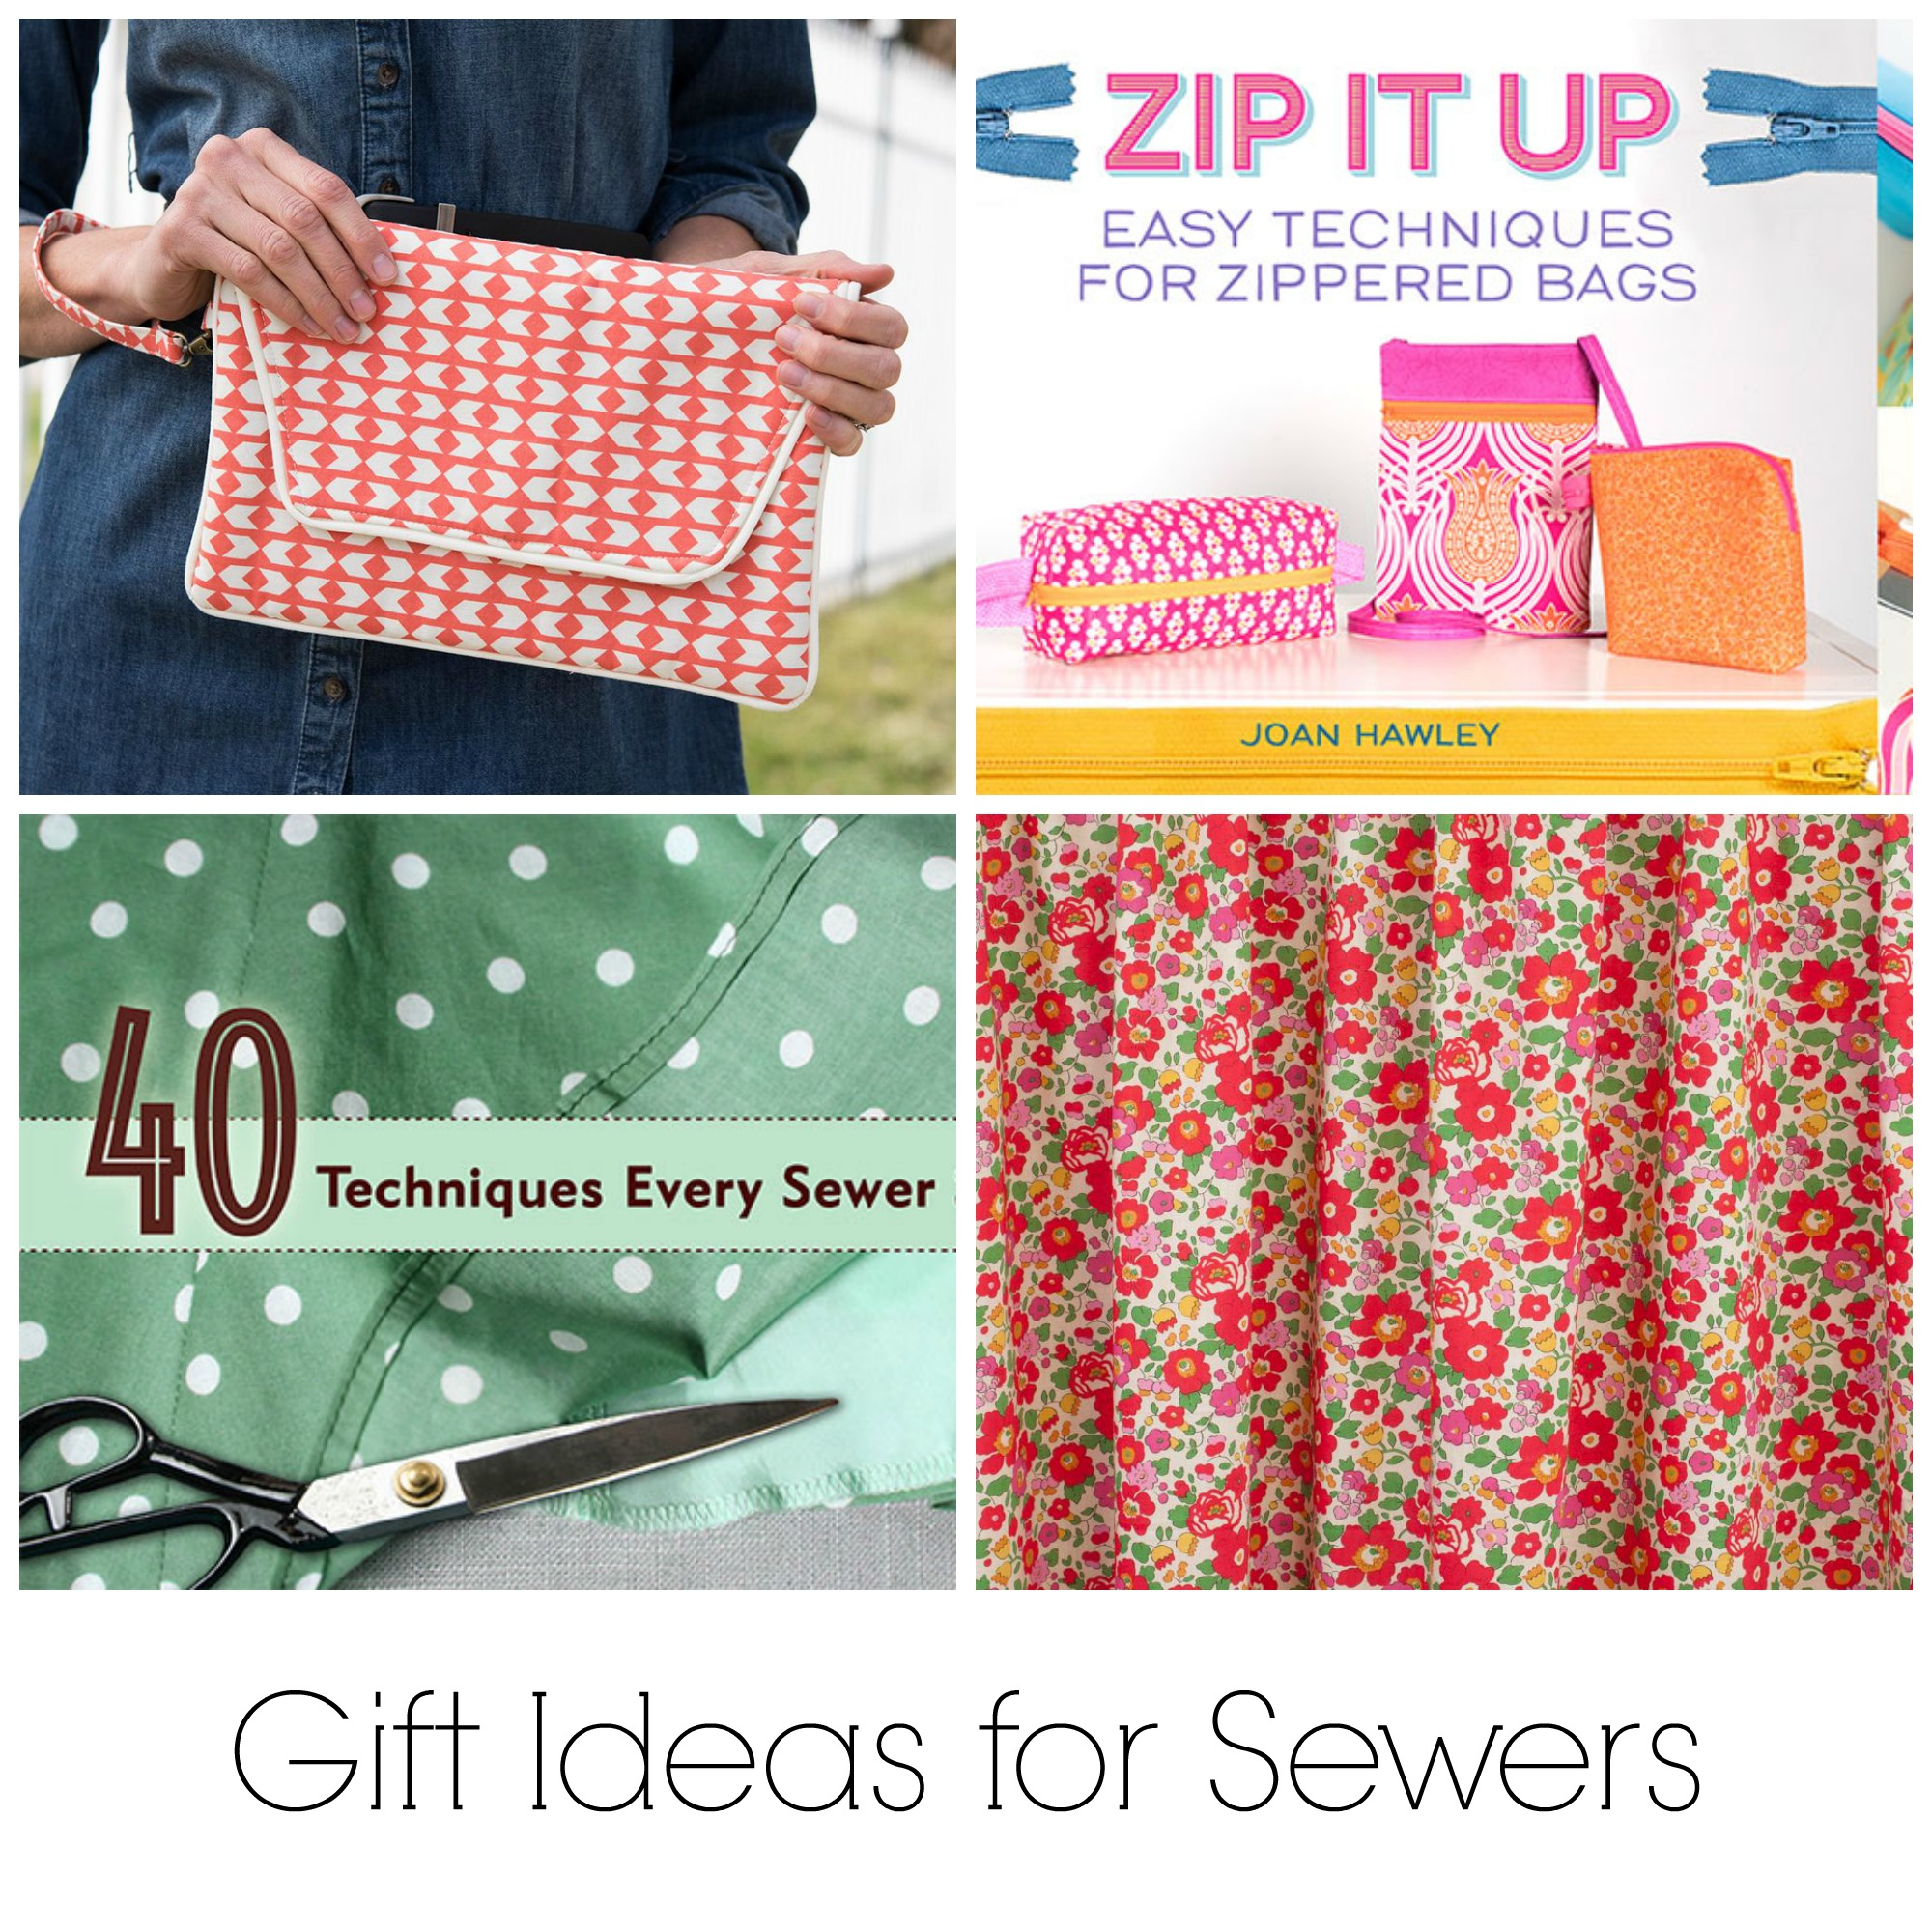 Gift Ideas for Sewers